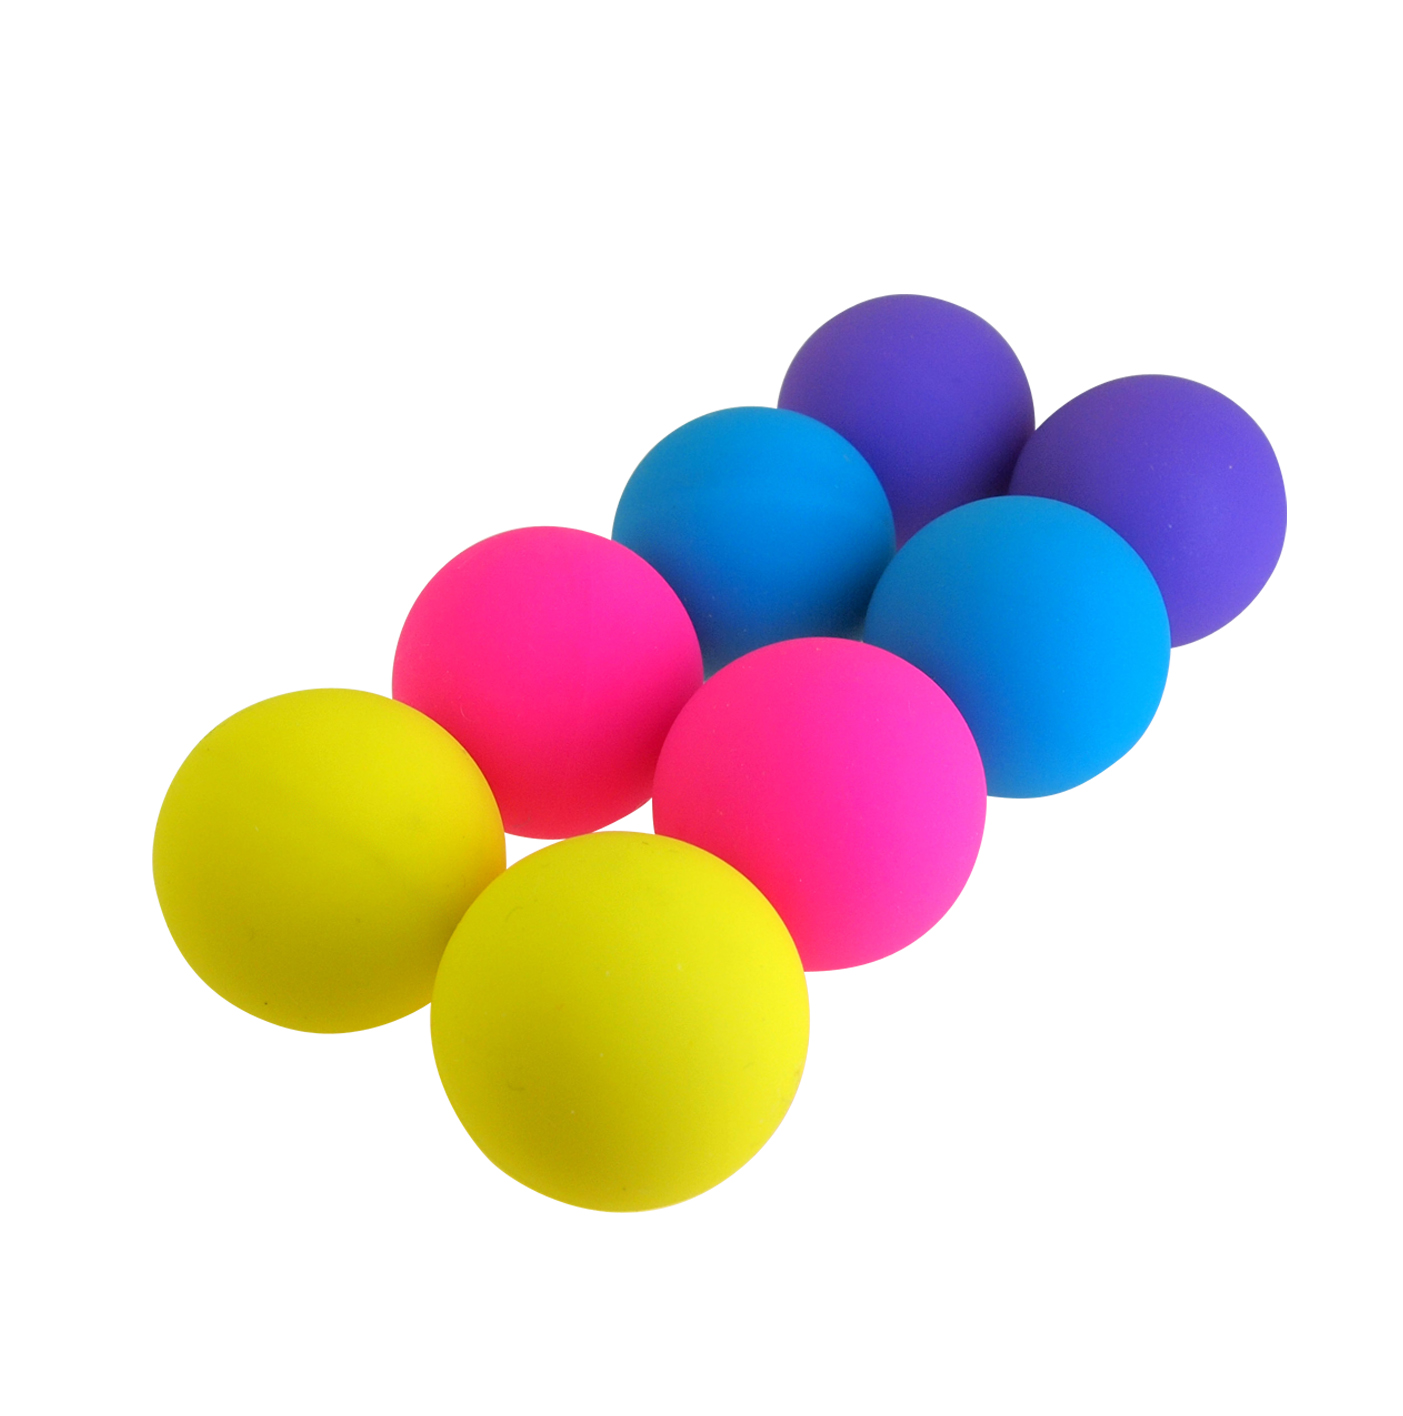 Maia Toys - Carrie Silicone Kegel Balls